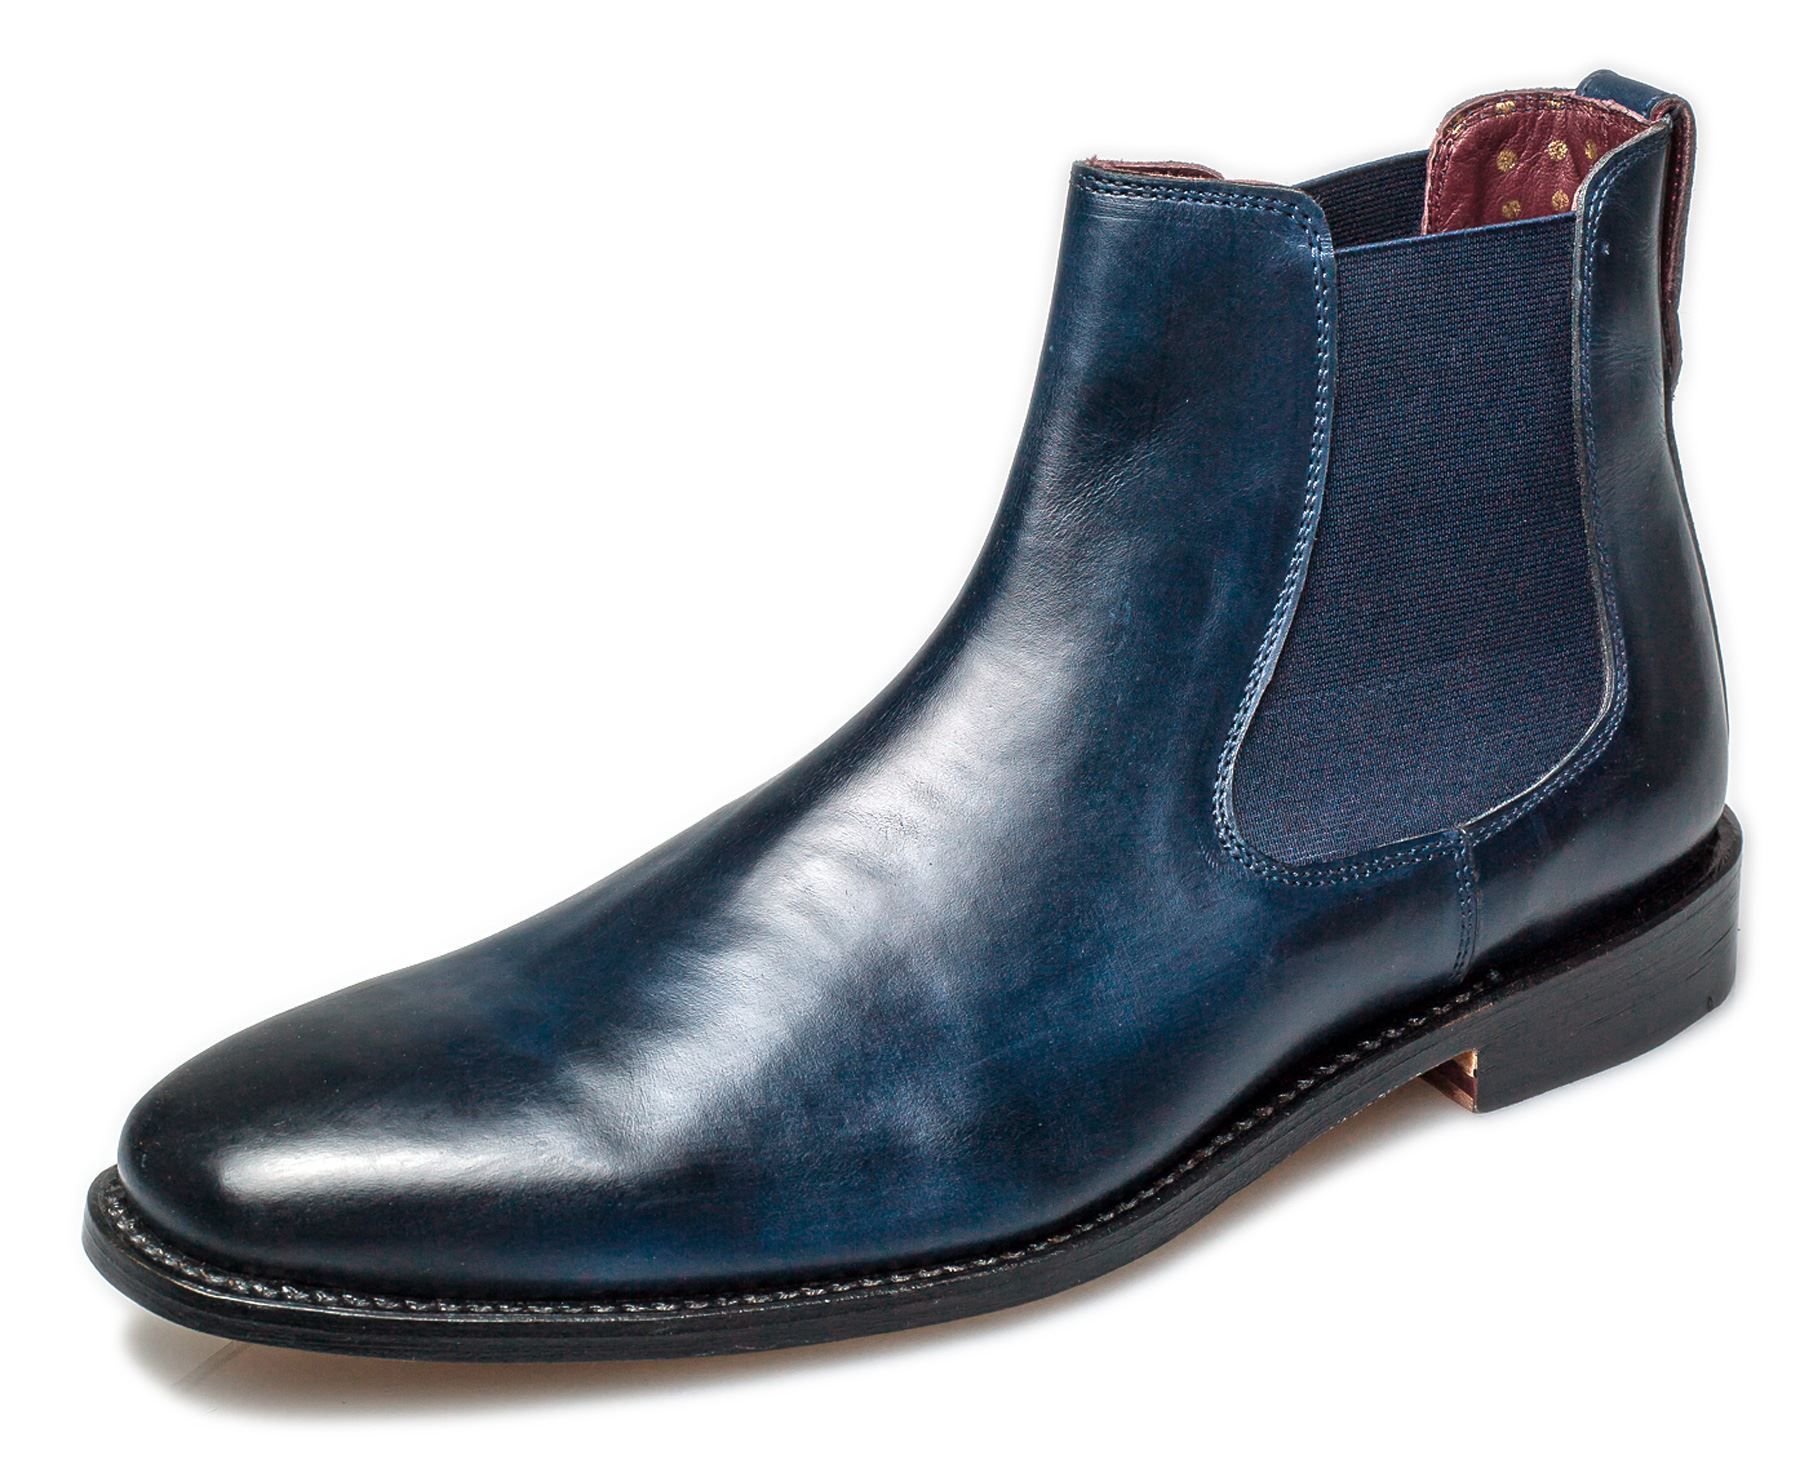 bb0dc805a09 Details about London Brogues Harvey Mens Leather Sole Chelsea Boots Navy